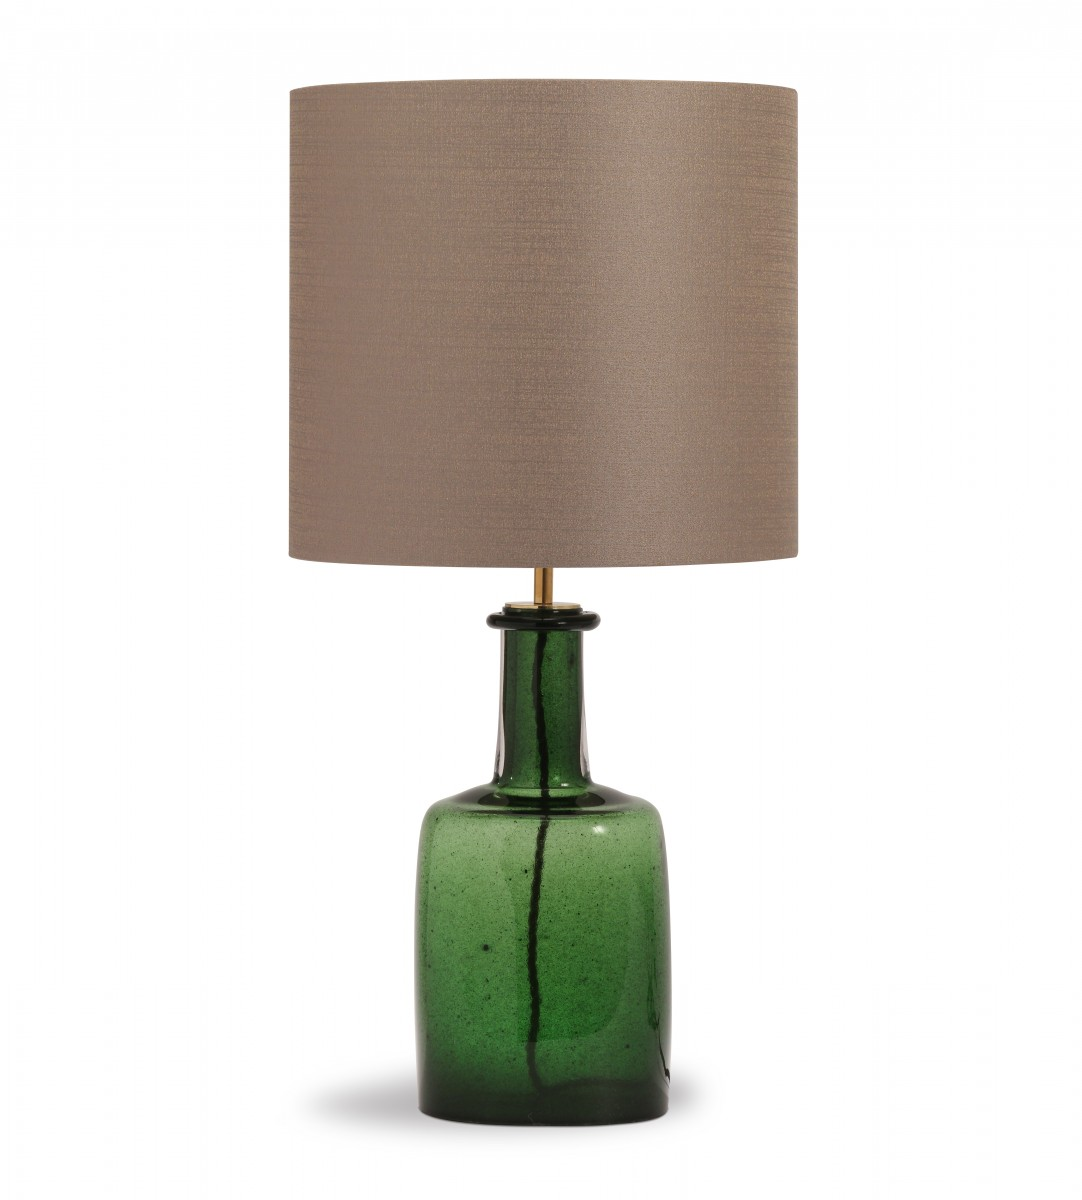 Attractive Apothecary Lamp